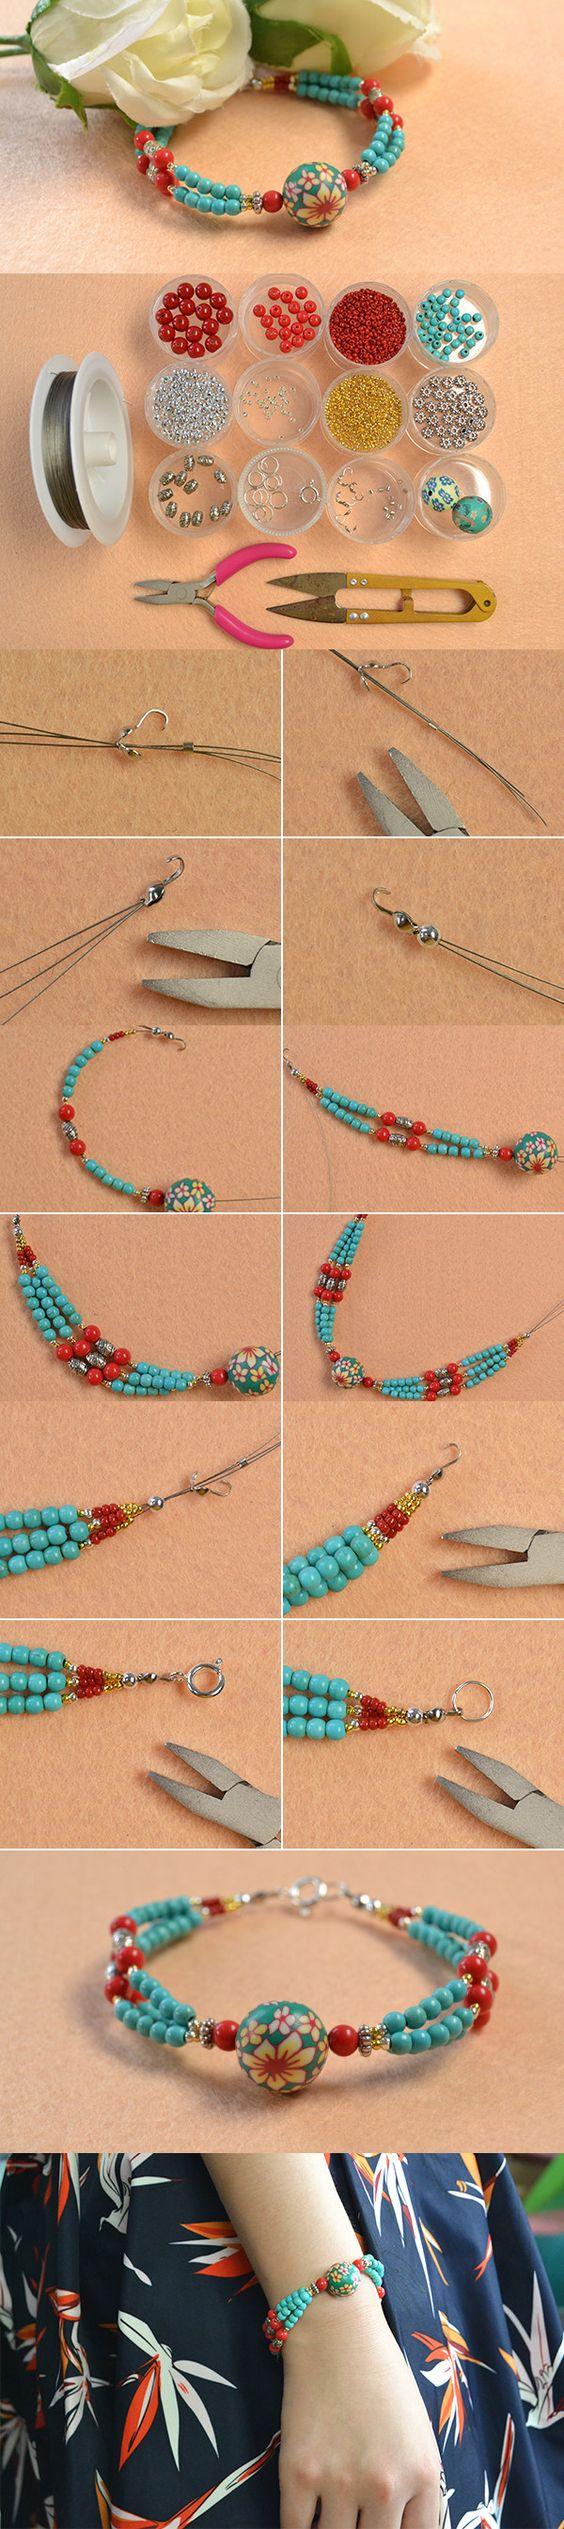 Handmade Ethnic Beaded Bracelet with Turquoise Beads: